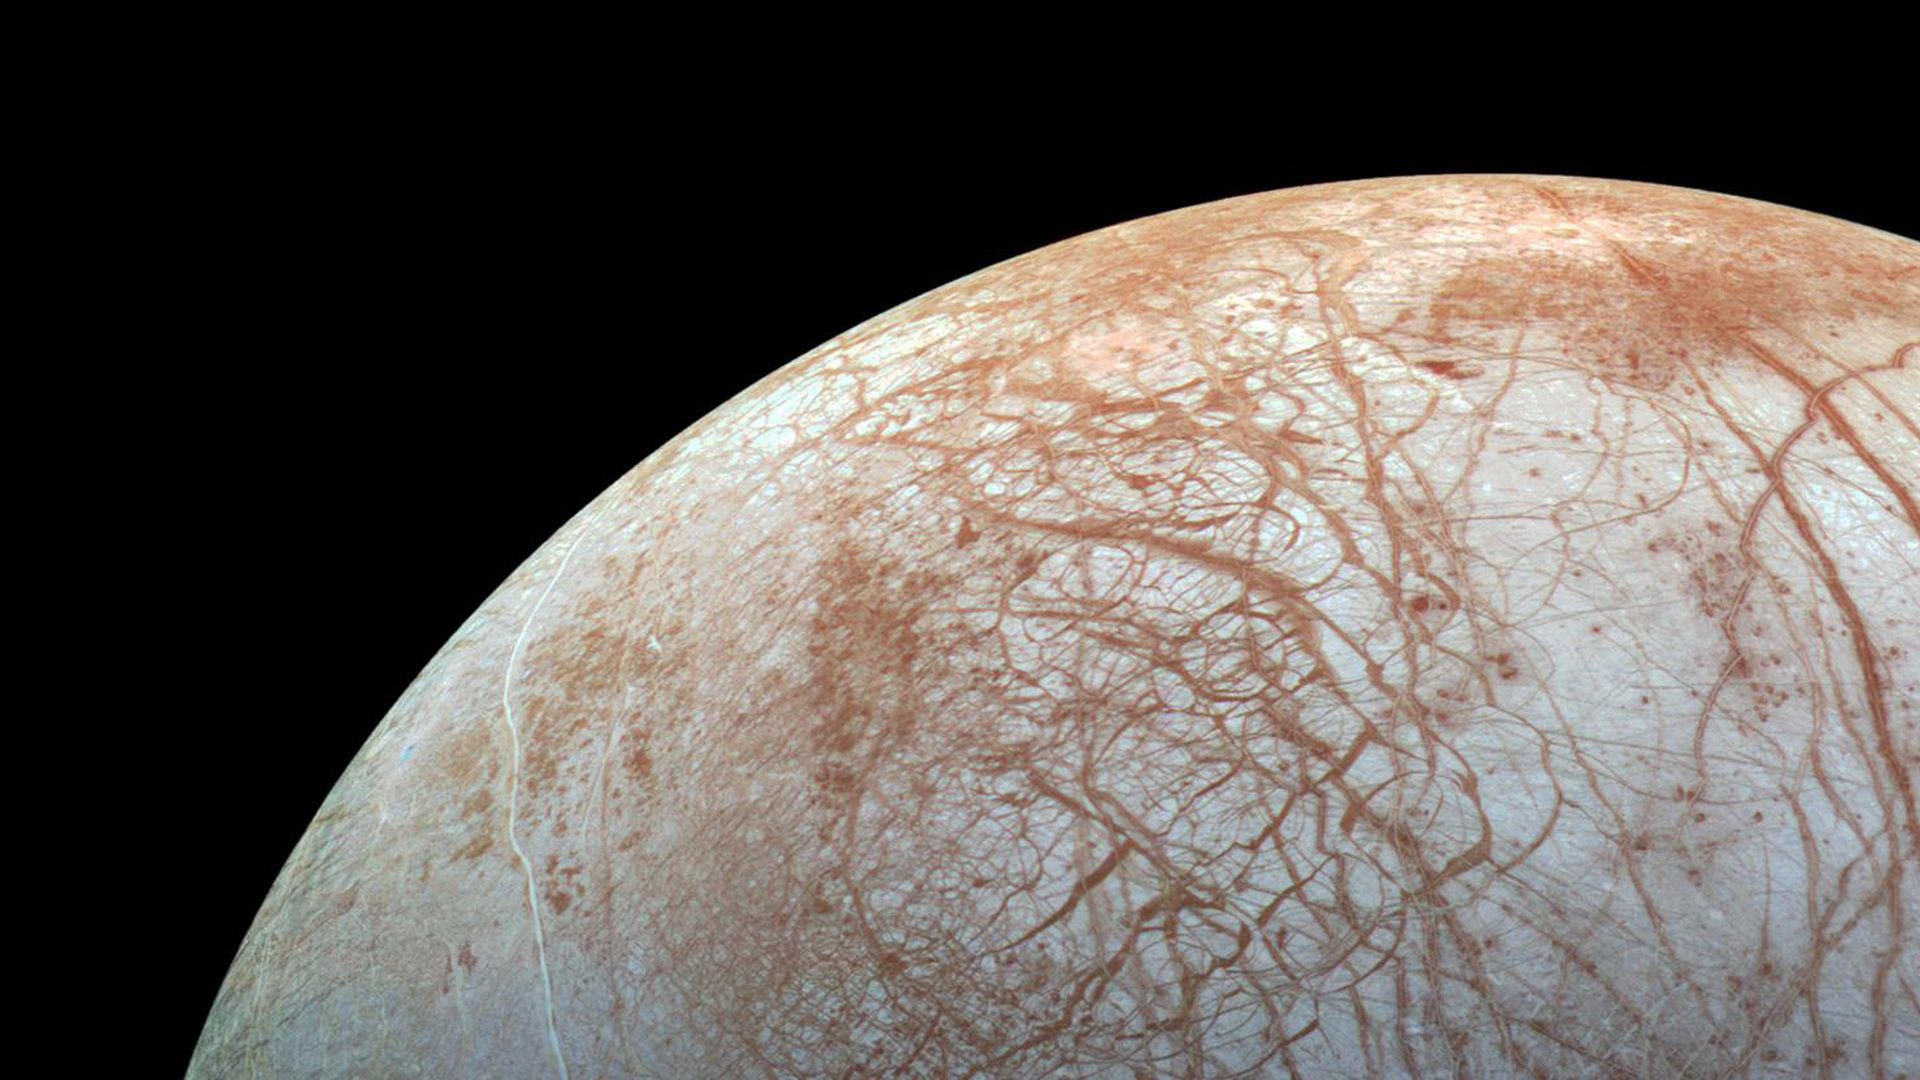 Jupiter's icy moon Europa.